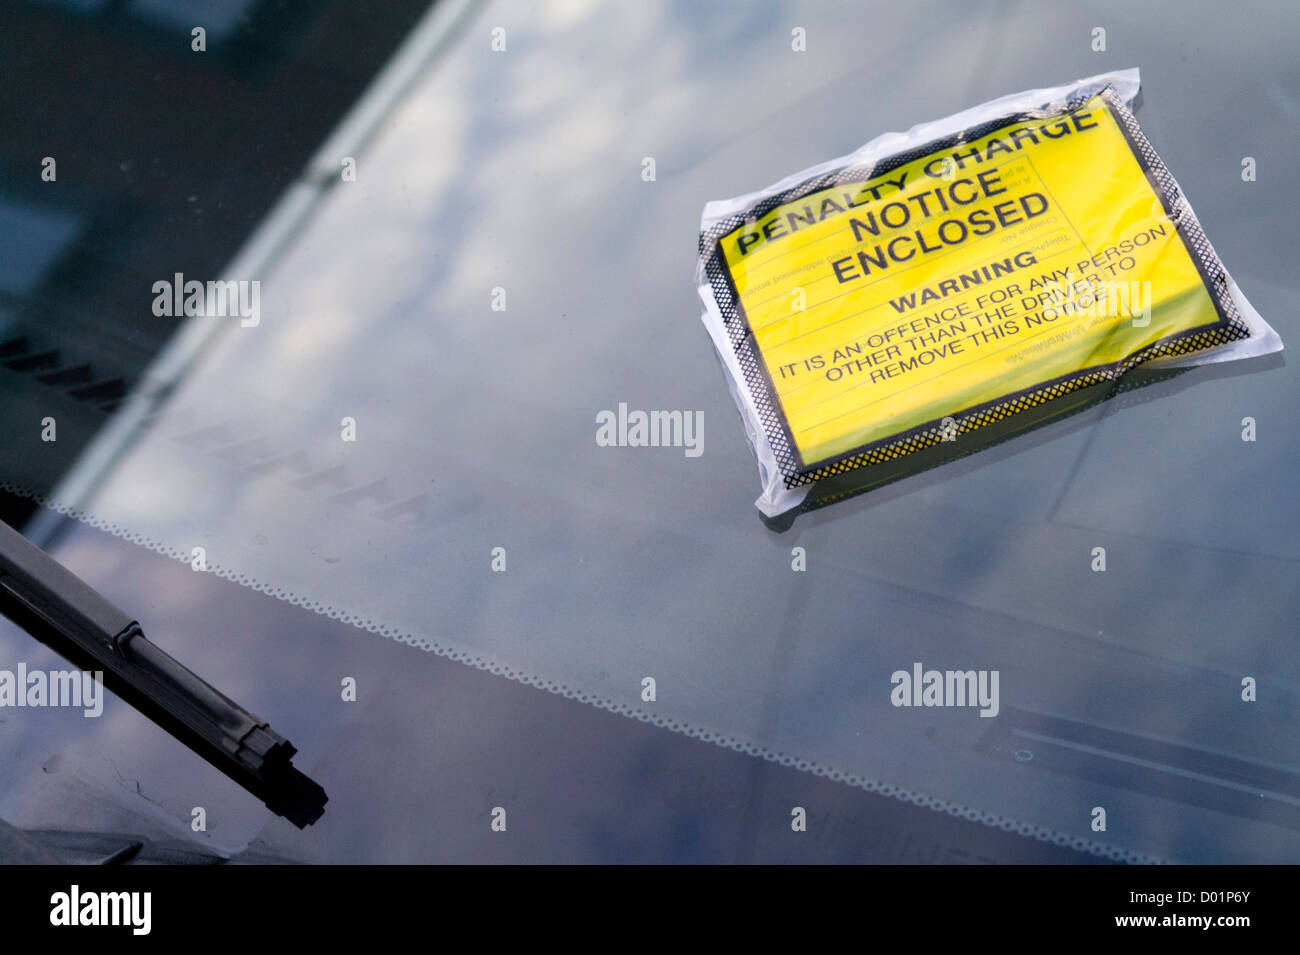 Penalty charge notice parking ticket on car windscreen. - Stock Image